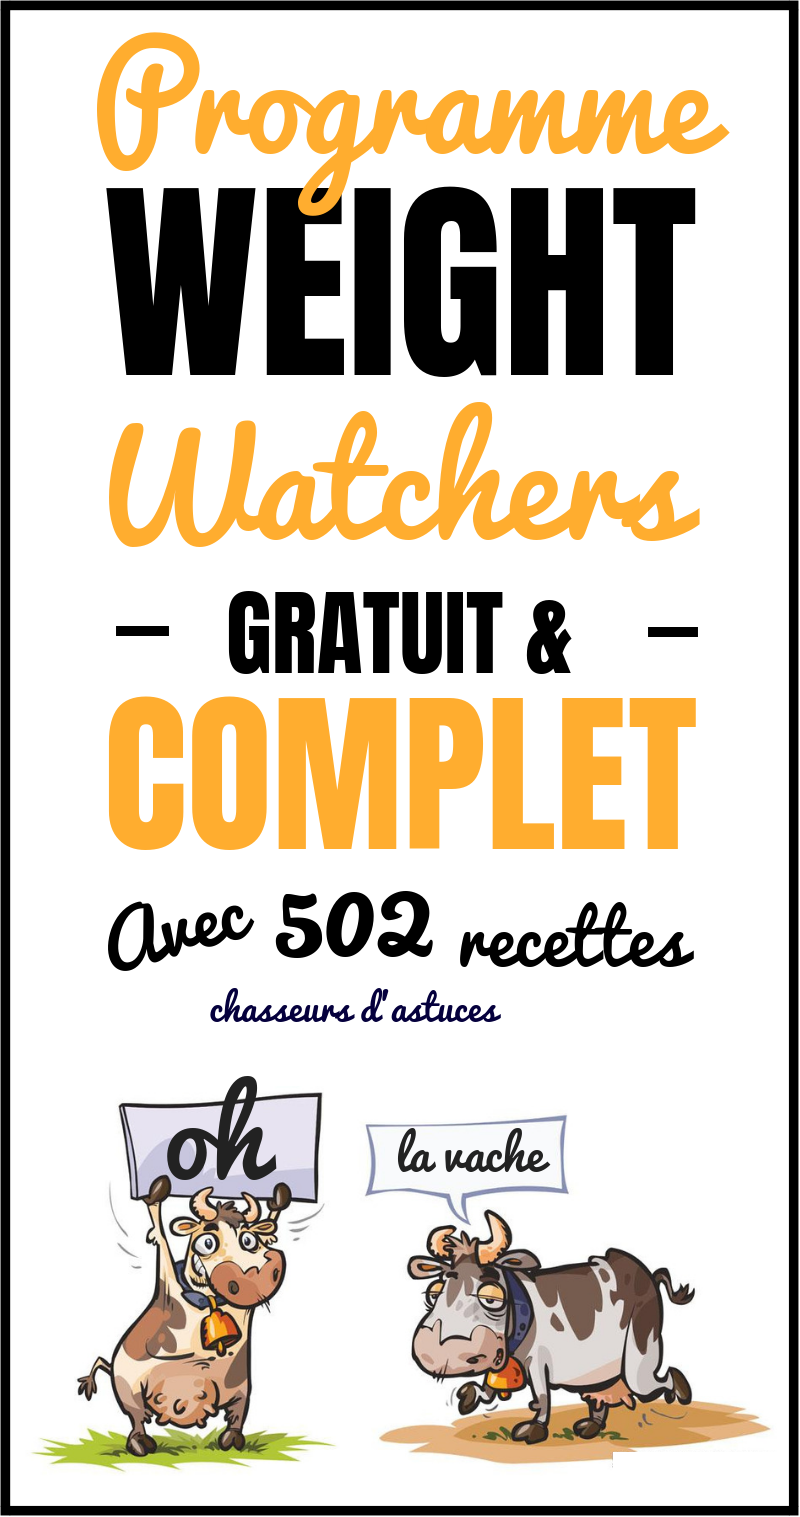 programme weight watchers gratuit  u0026 complet  avec 502